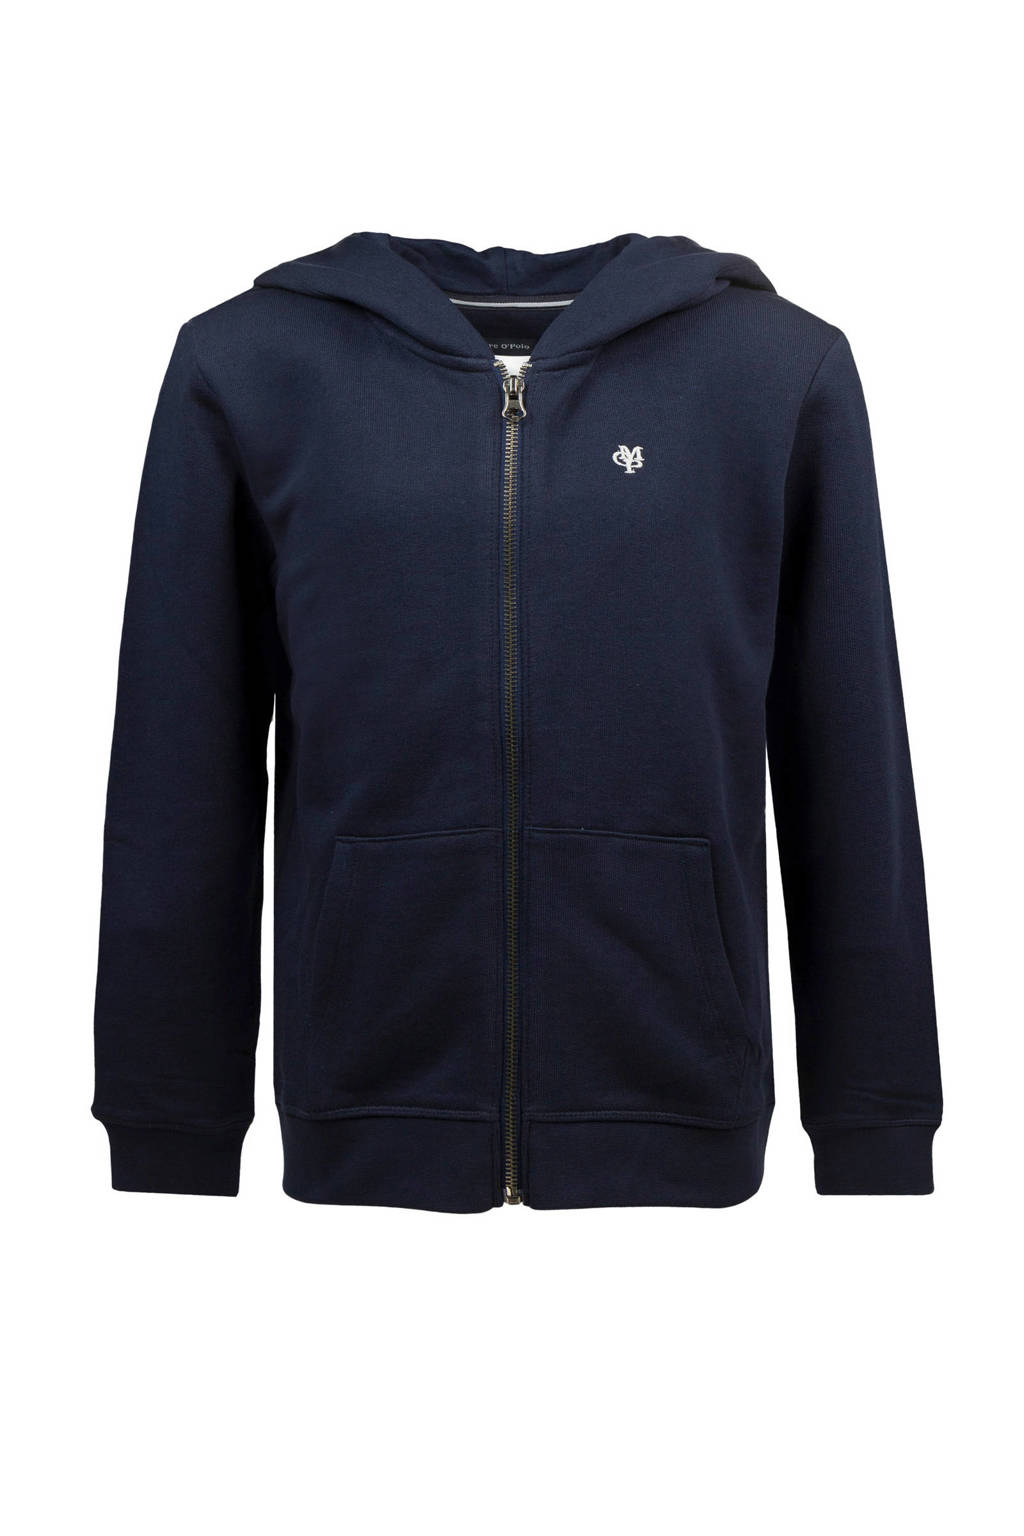 Marc O'Polo sweatvest donkerblauw, Donkerblauw